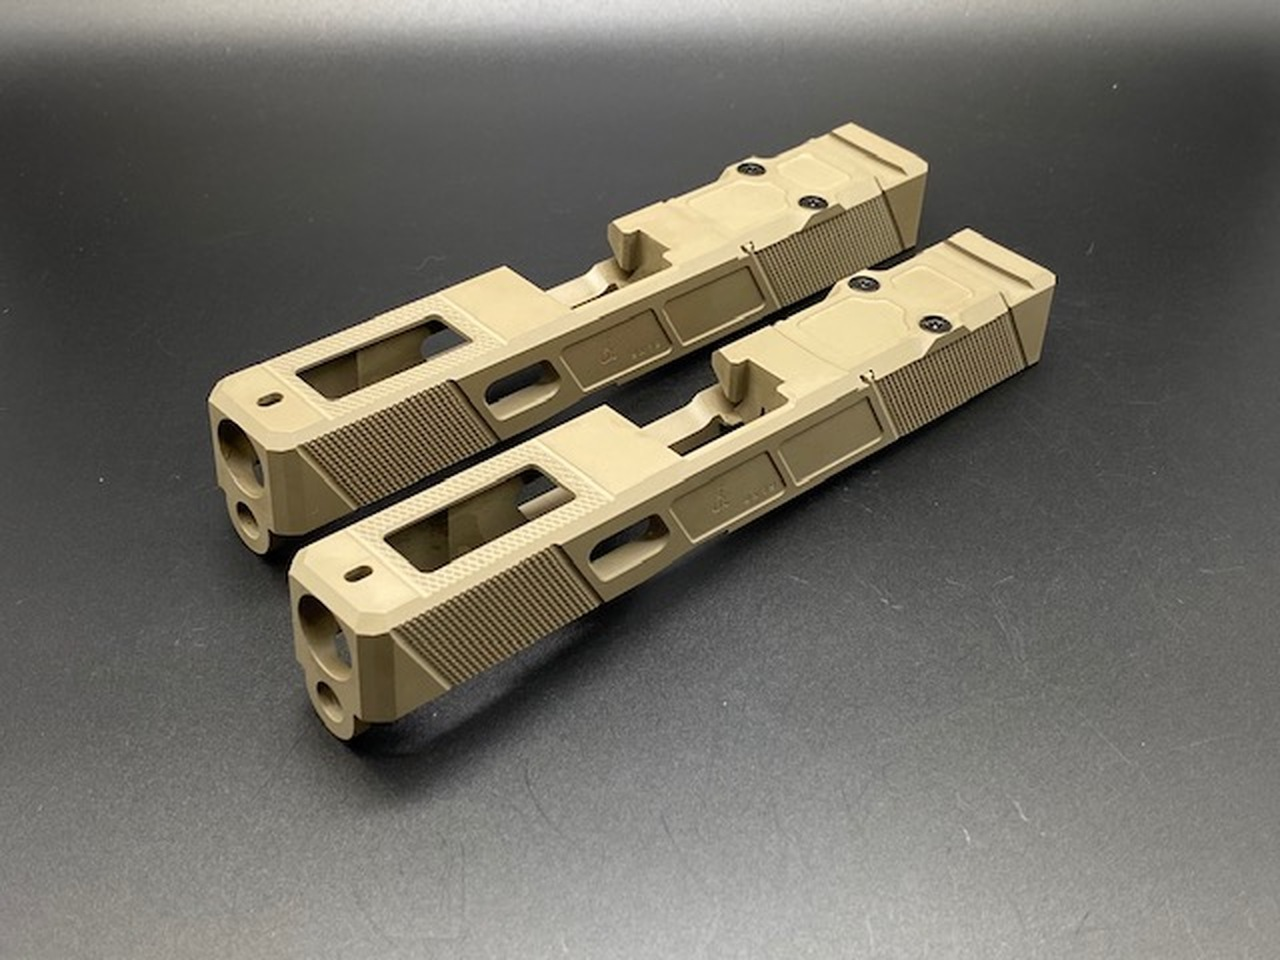 Alpha Sports V5 G19 Executive Carry Stripped Slide - Gen.3 FDE Cerakoted